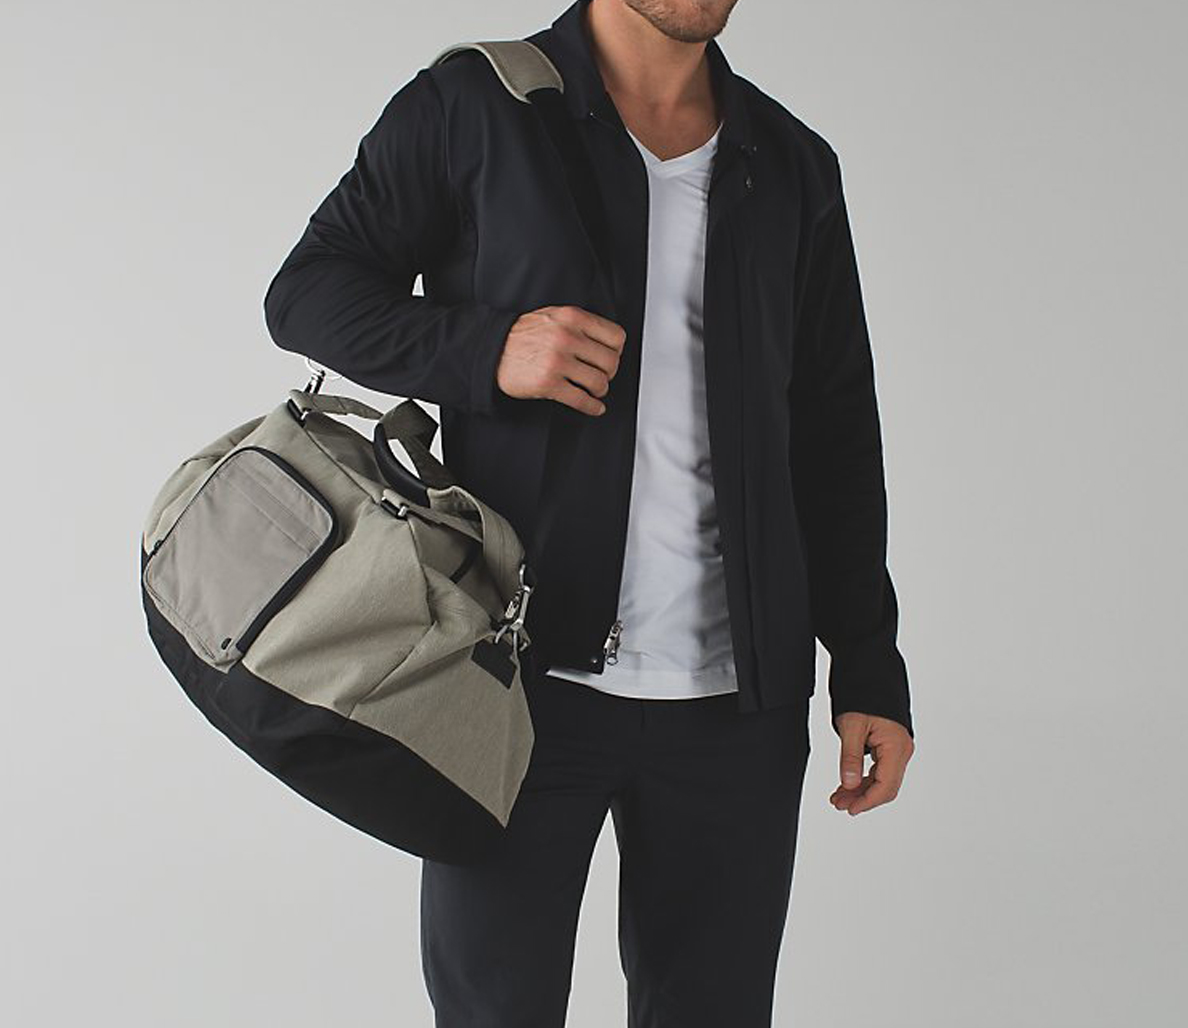 The Best Bags For Men To Transition From Work Gym